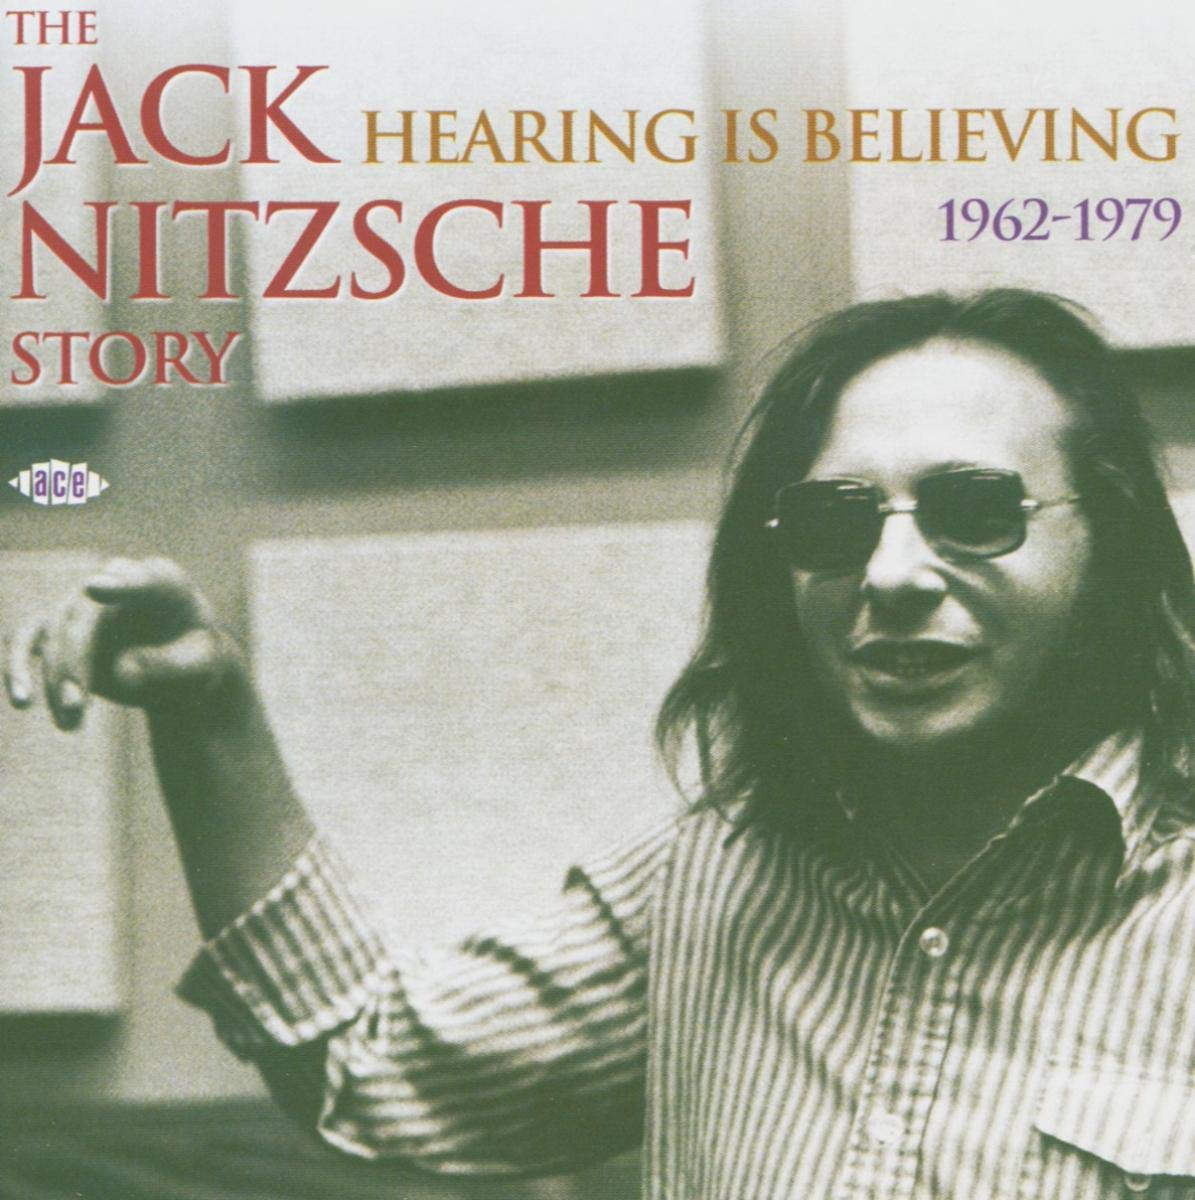 The Jack Nitzsche Story - Hearing is Believing: 1962 - 1979